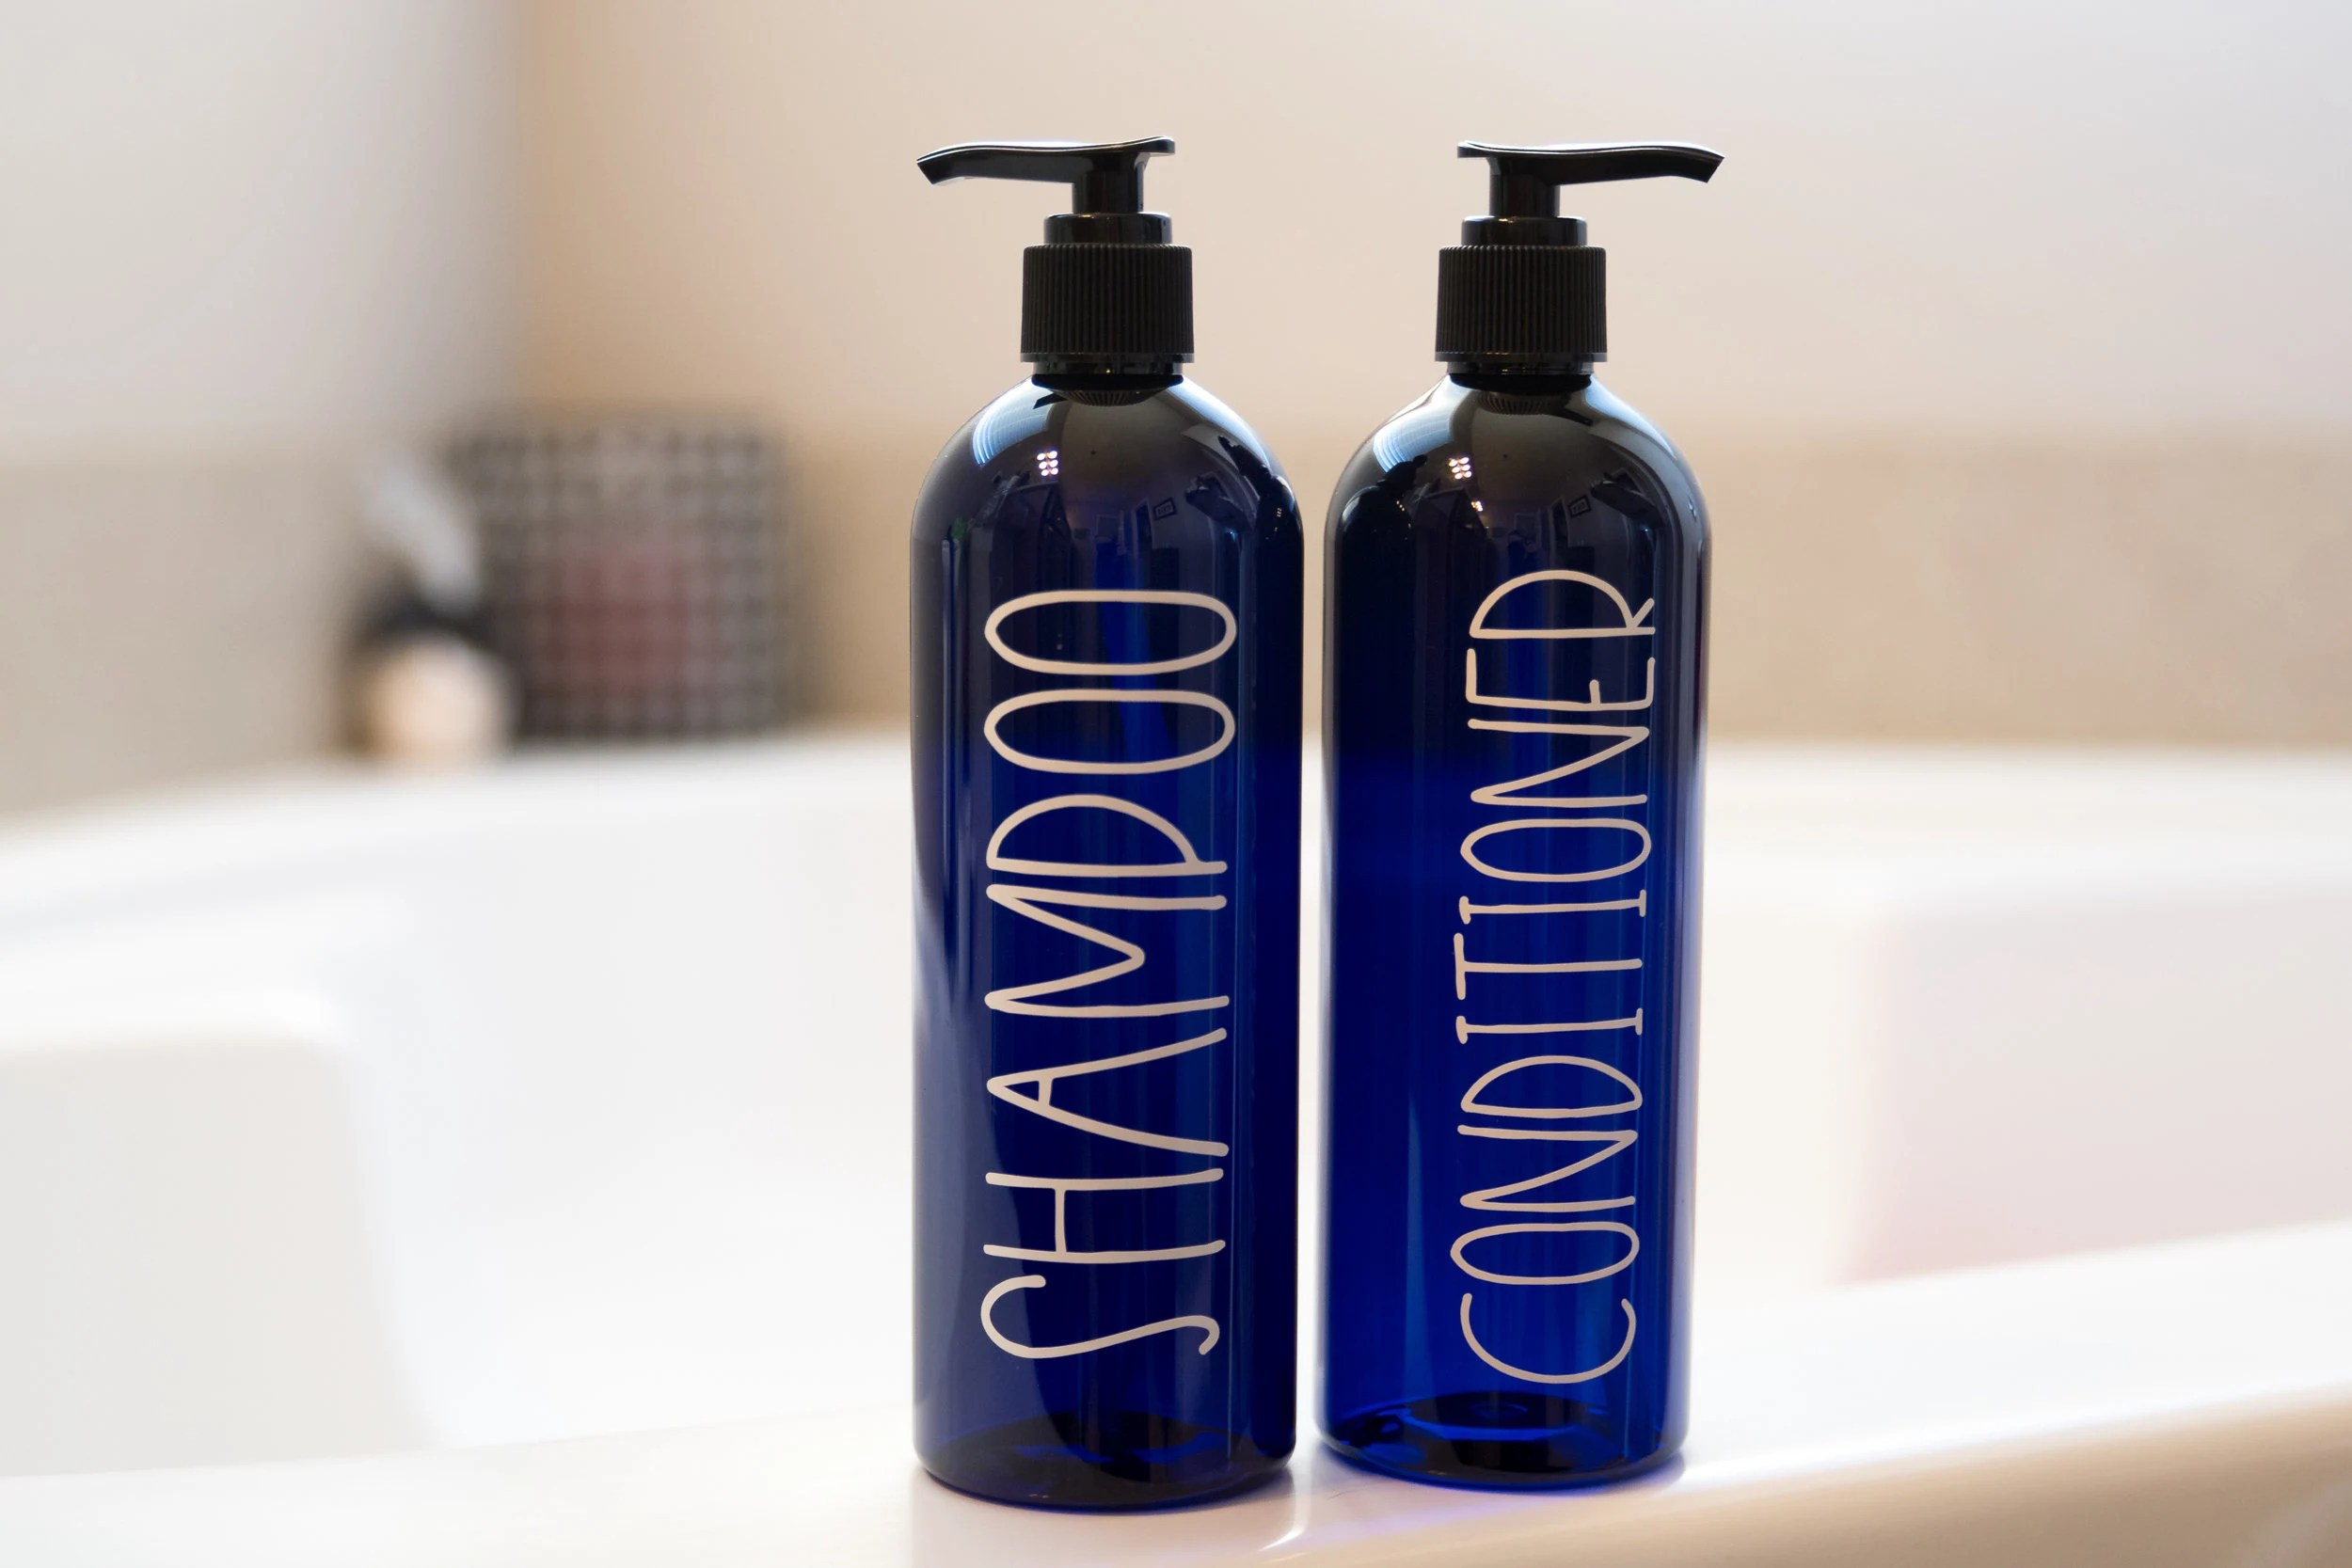 Blue Bathroom Accessories Blue Bathroom Accessories Set Modern Bathroom Storage Containers Body Wash And Lotion Bottles Shampoo Pump Bottles Labeled Bottles